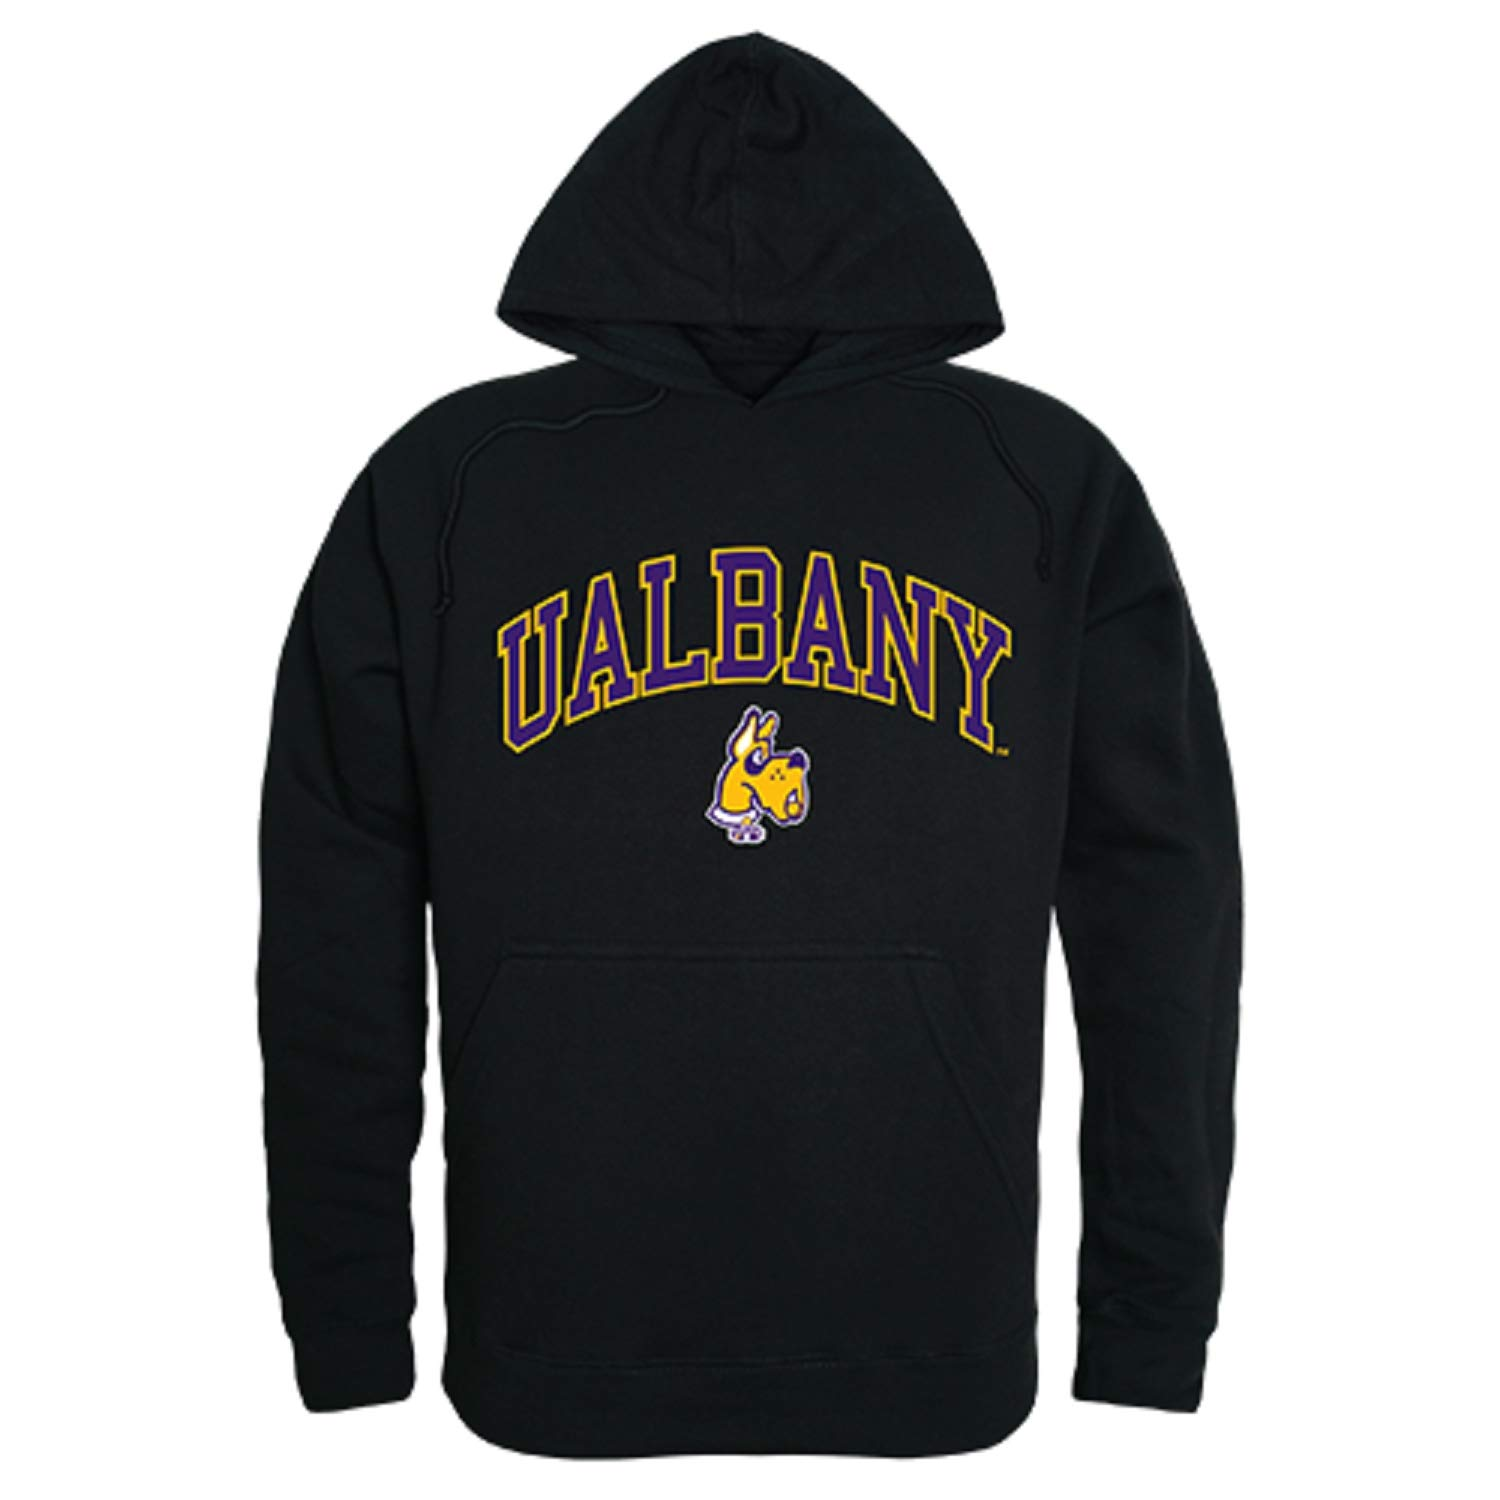 University at Albany The Great Dane UALBANY NCAA College Campus Hoodie Sweatshirt S M L XL 2XL